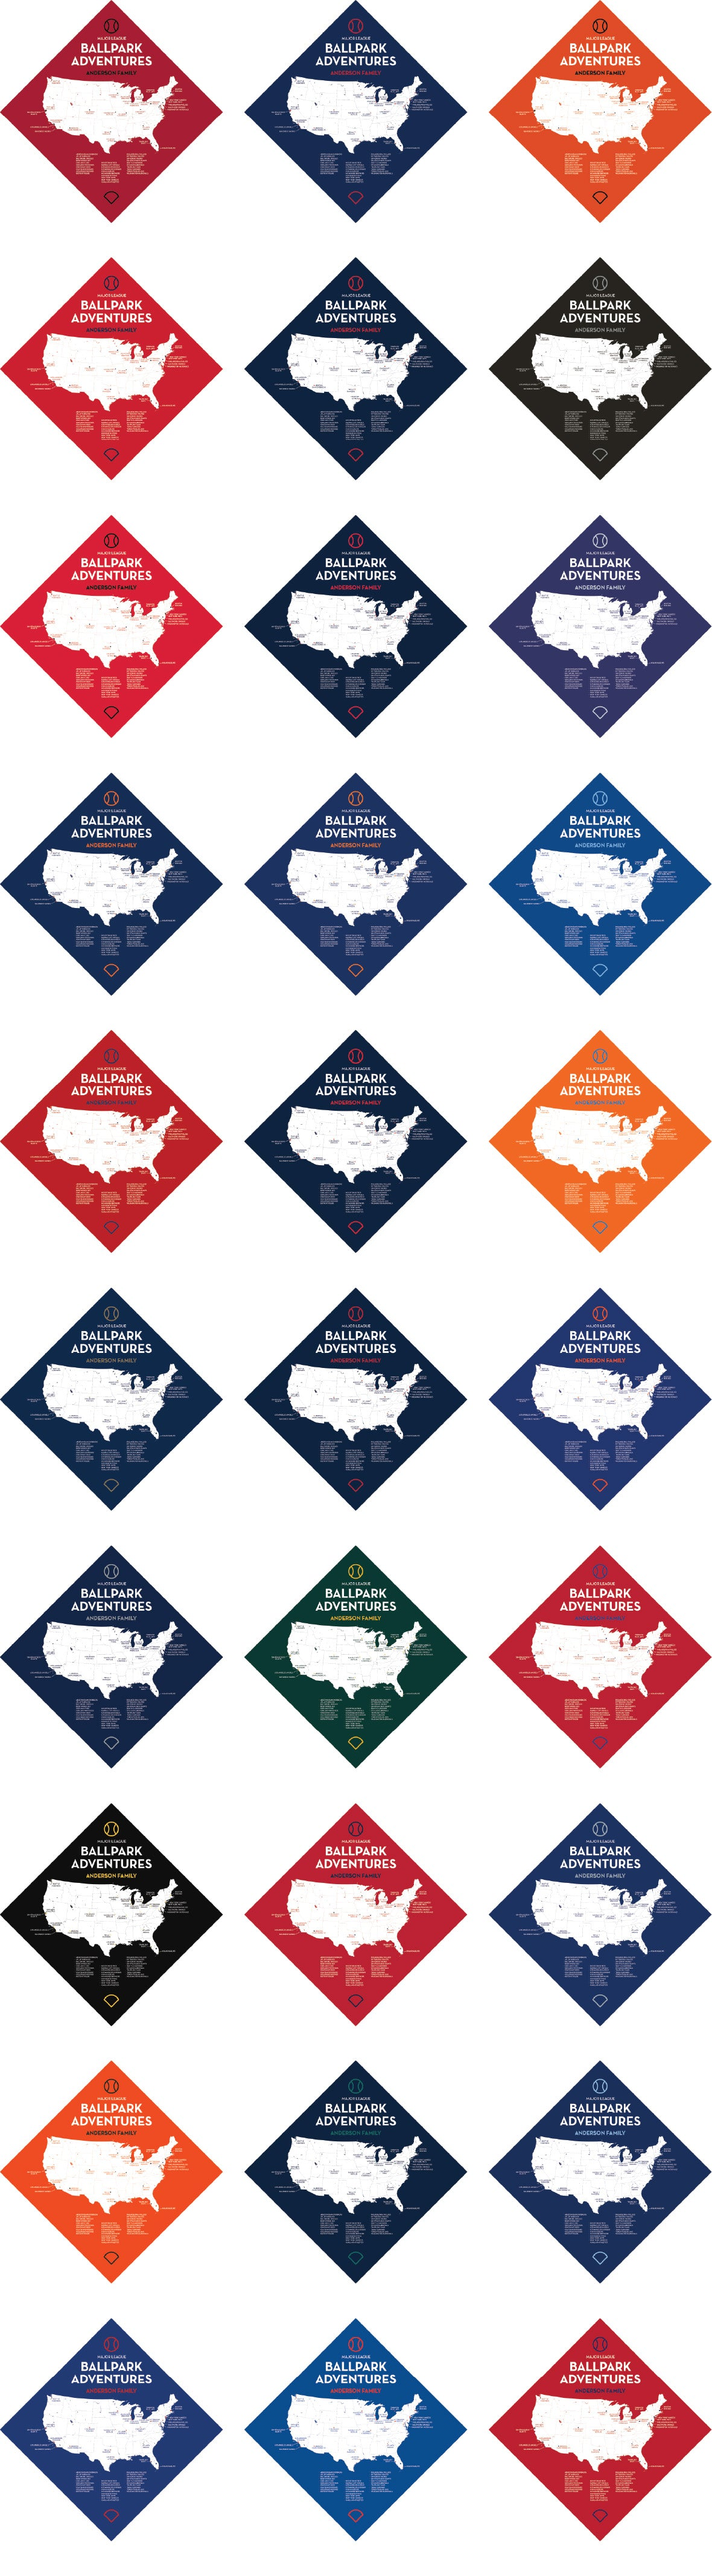 Personalized Ballpark Quest Push Pin Maps